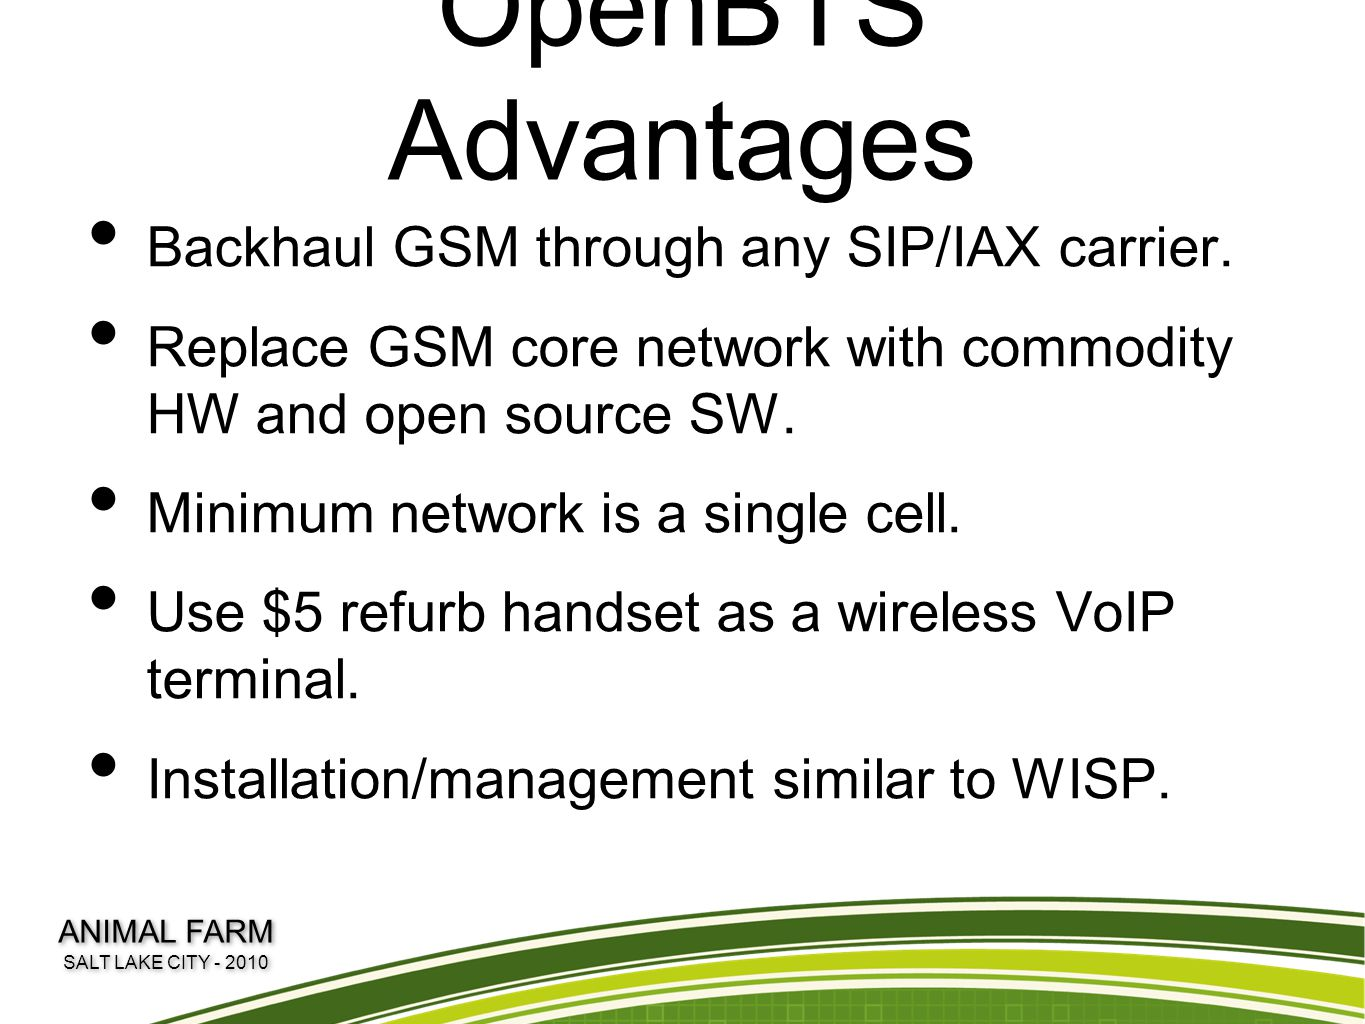 OpenBTS Advantages Backhaul GSM through any SIP/IAX carrier. Replace GSM core network with commodity HW and open source SW. Minimum network is a singl